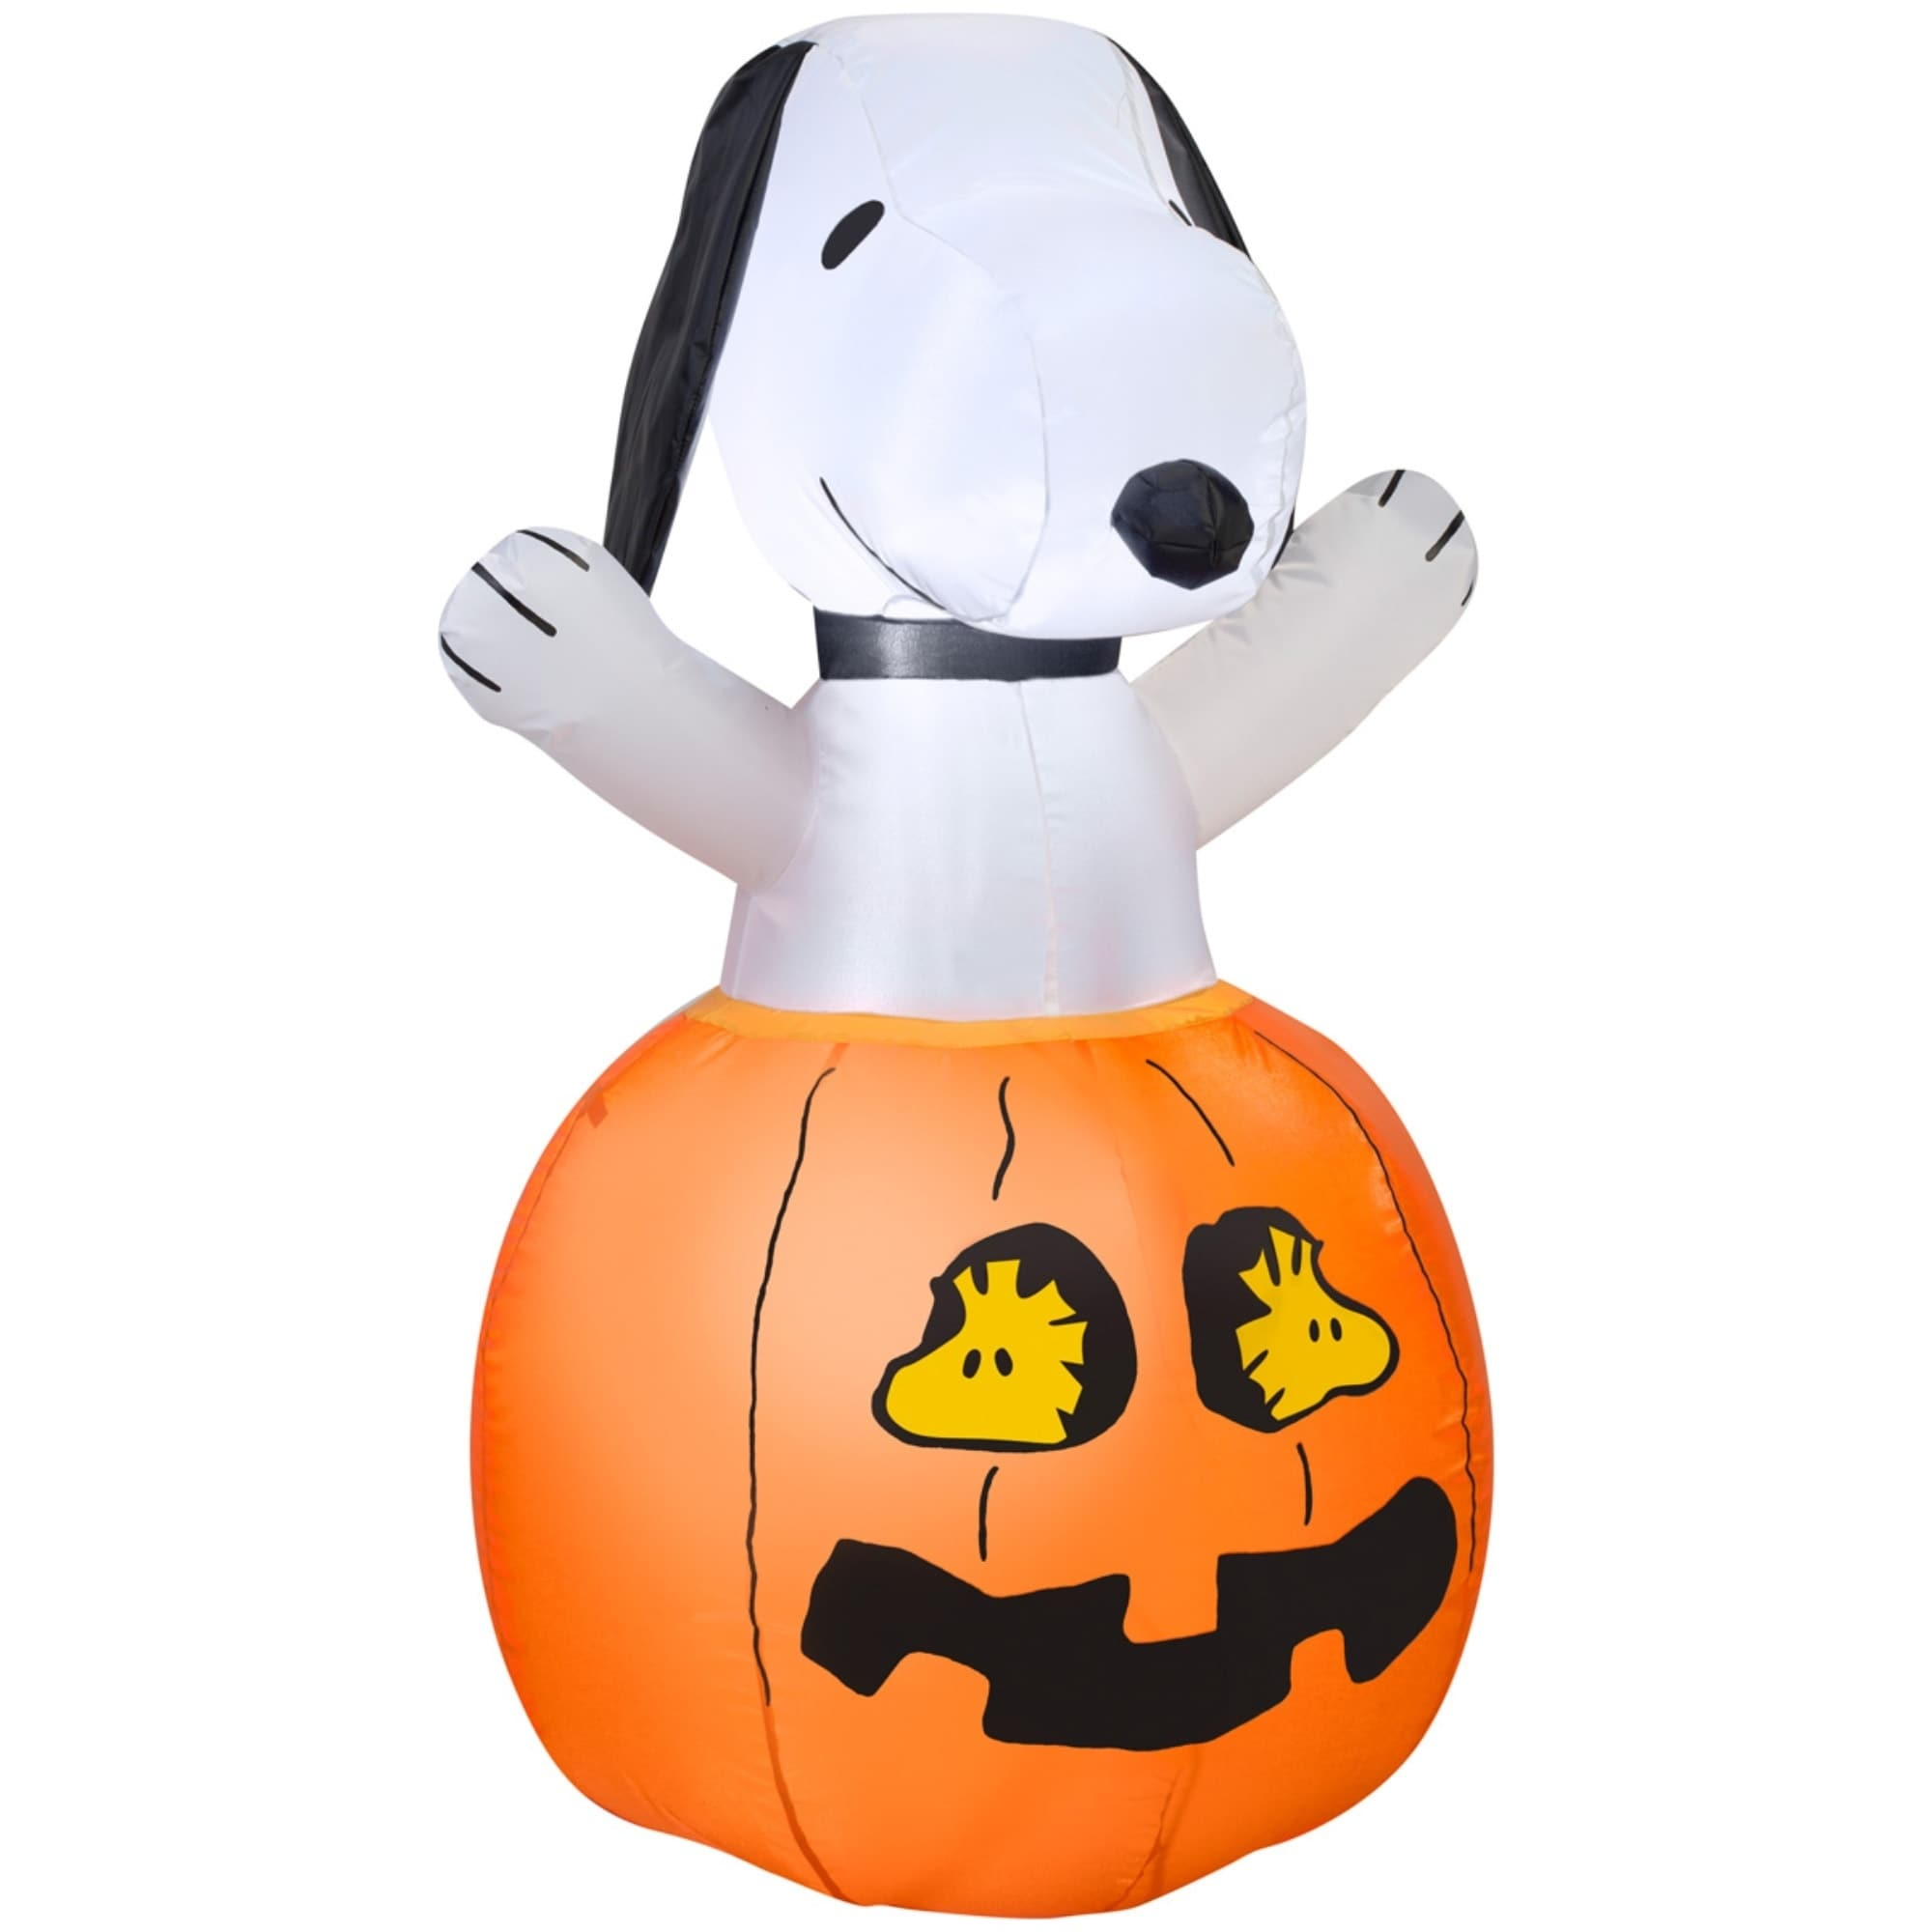 Snoopy And Woodstock Christmas Inflatable.Halloween Airblown Inflatable Snoopy In Pumpkin W Woodstock